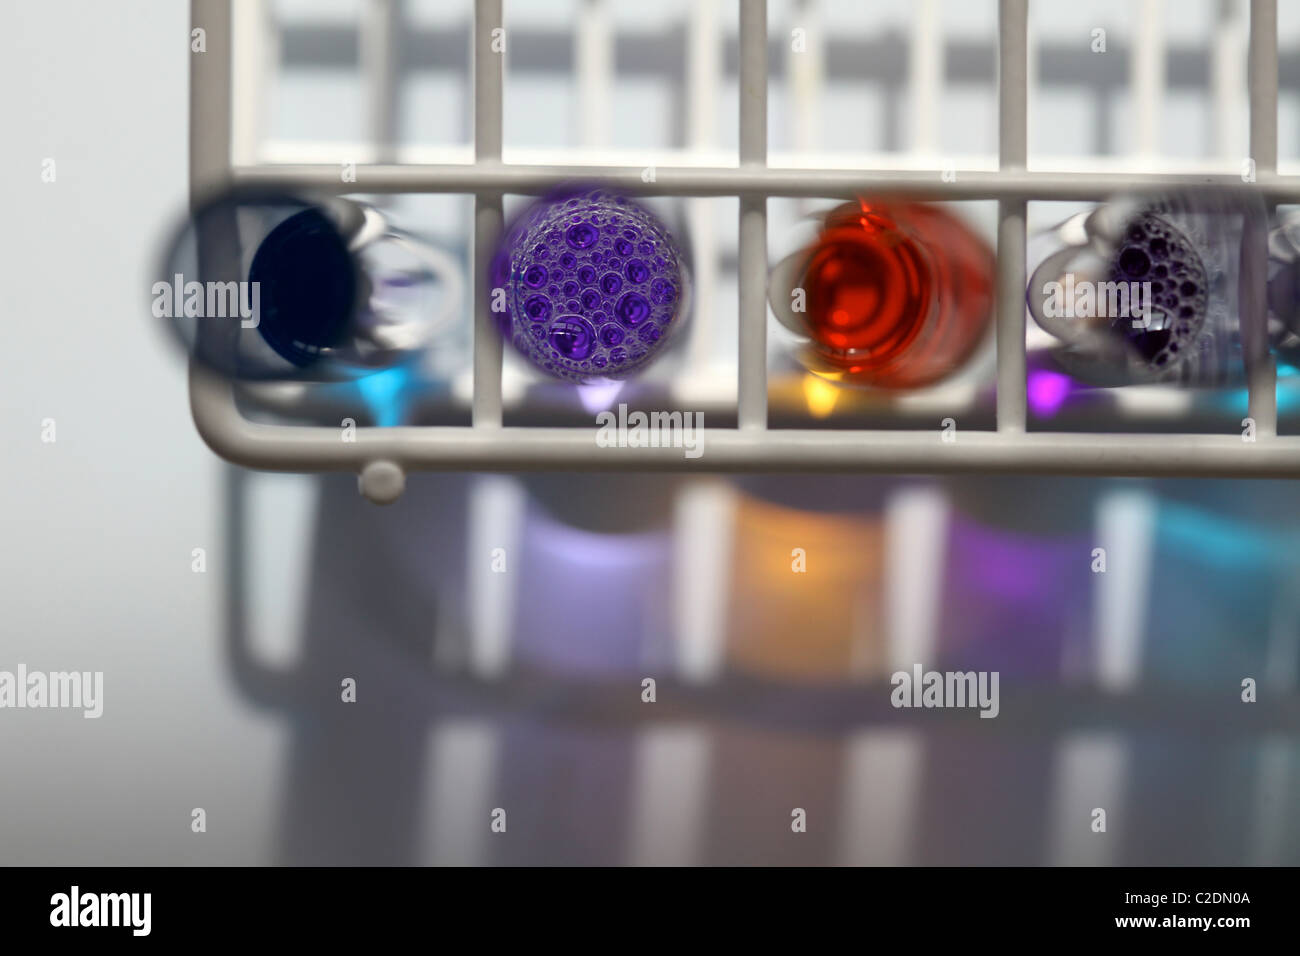 Ariel view of rack of four test tubes in a laboratory containing liquids in various colours - Stock Image